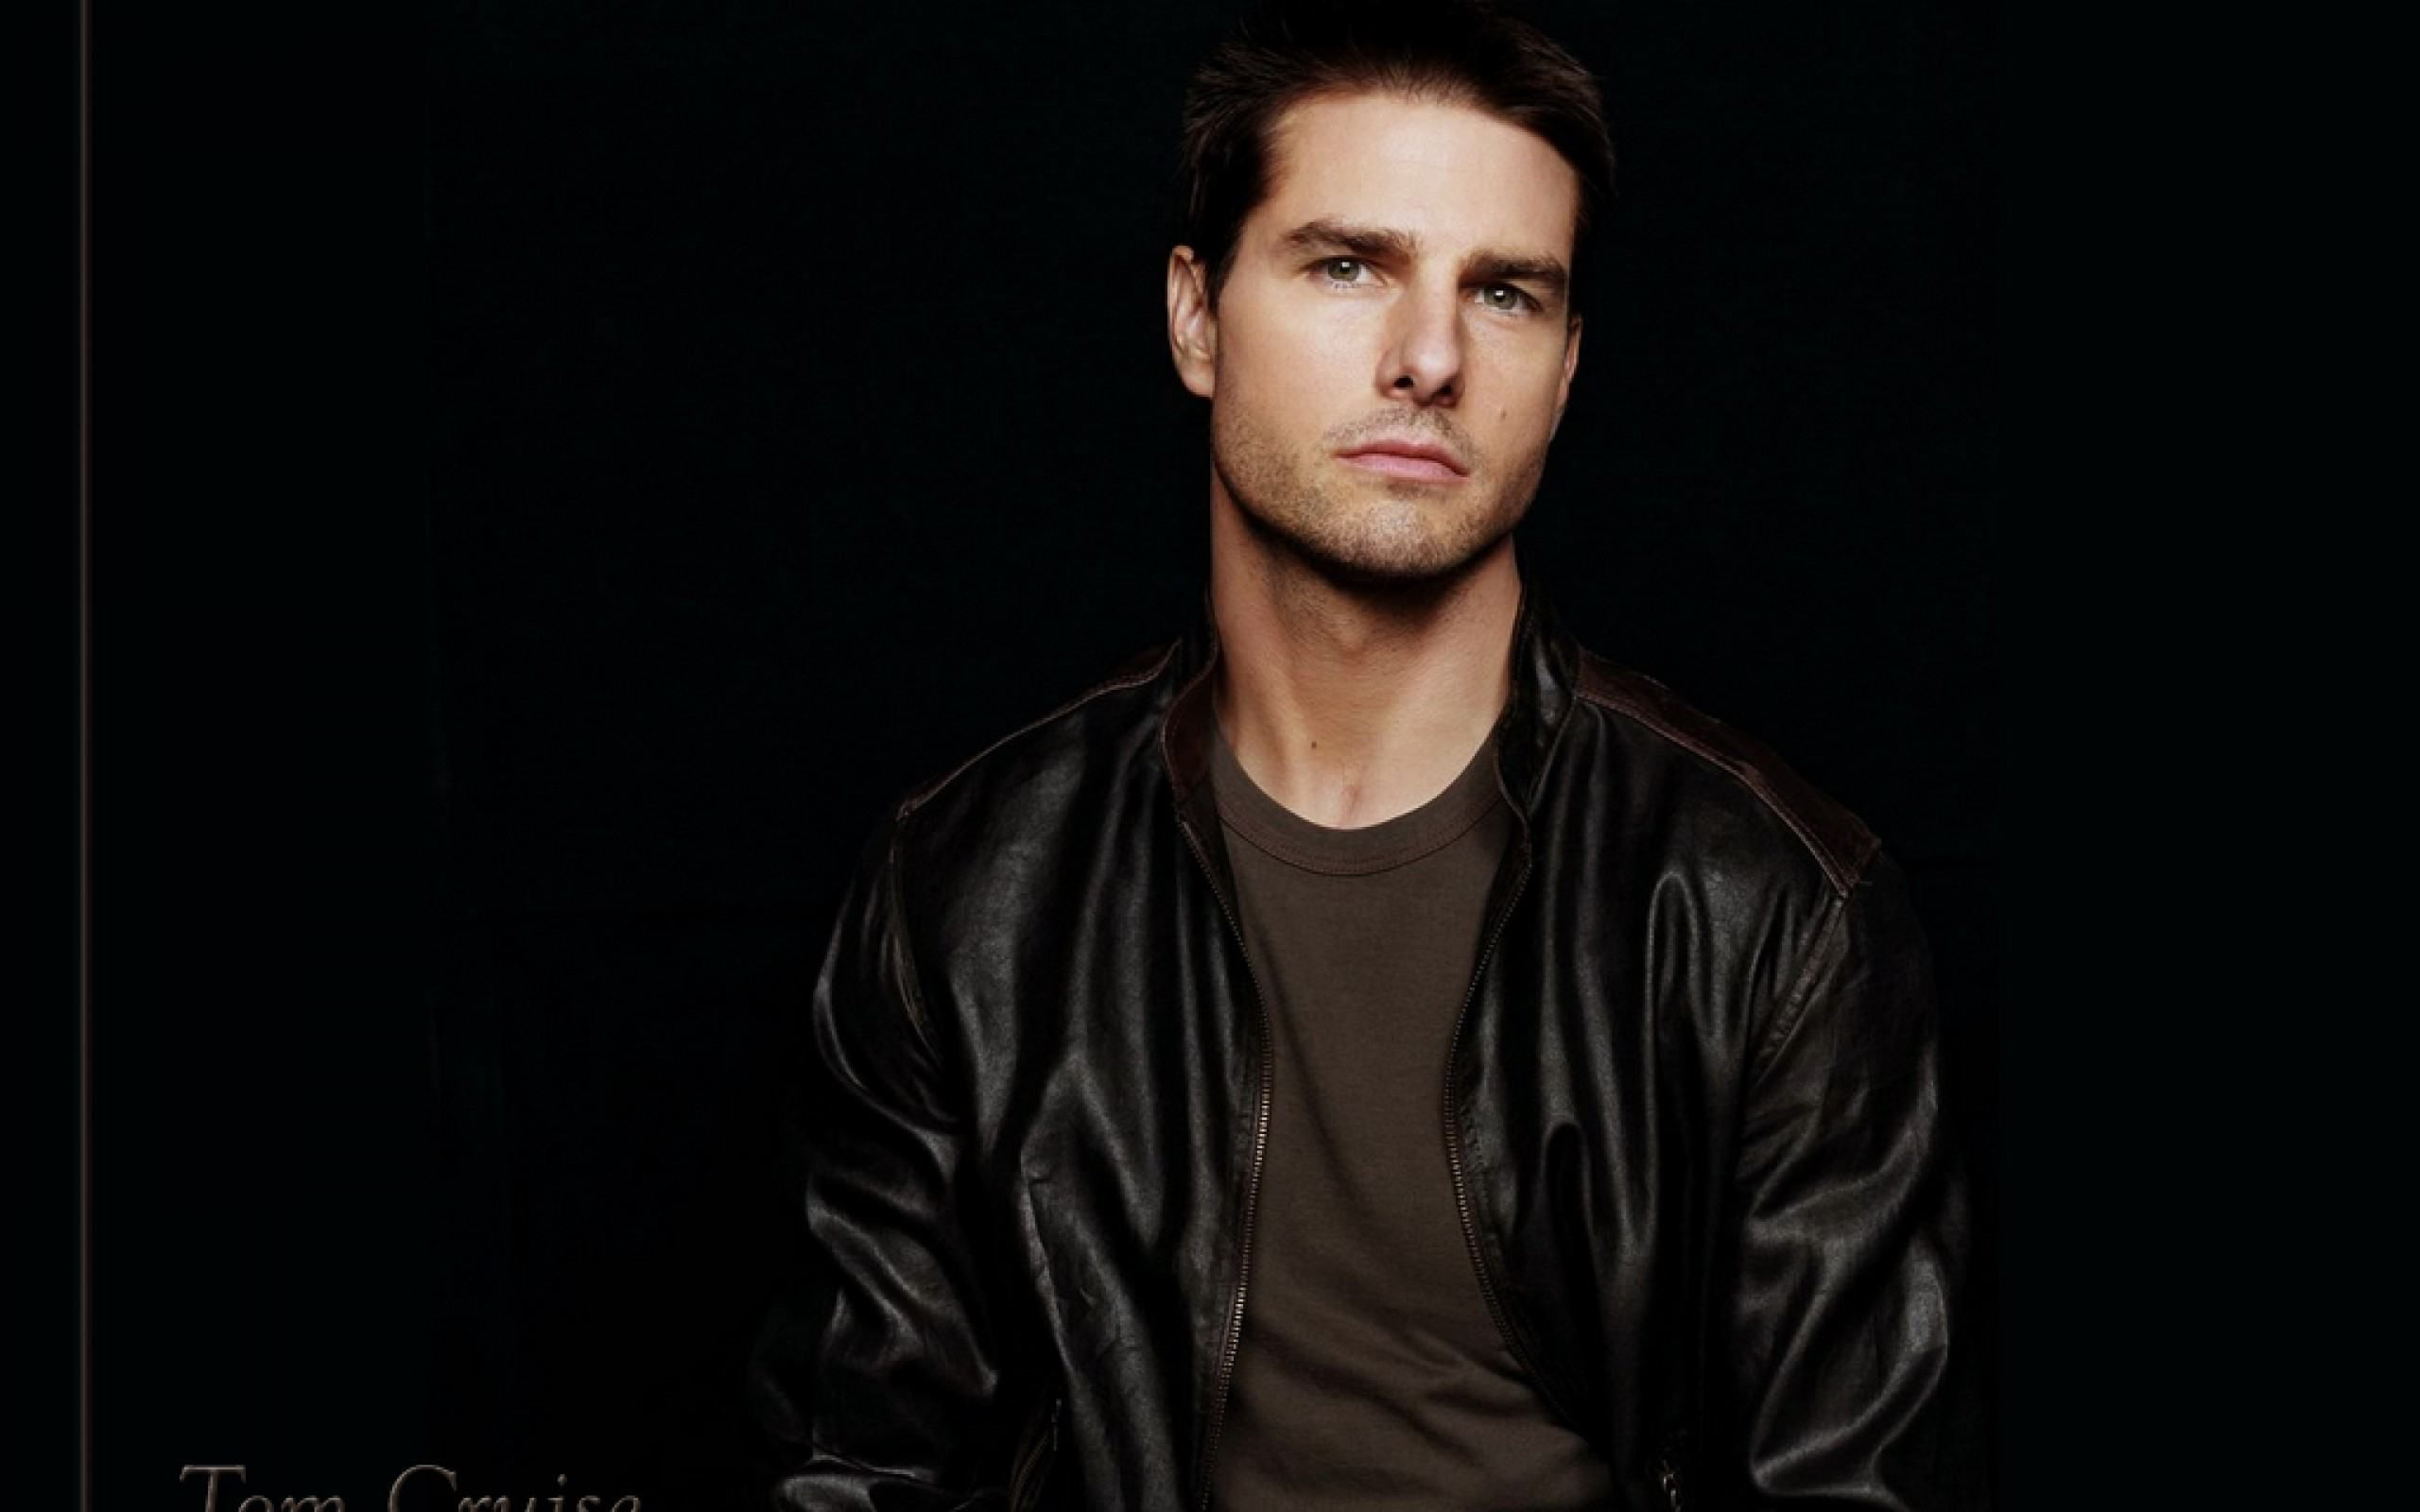 actor on black background   Google Search lex Tom cruise 2560x1600